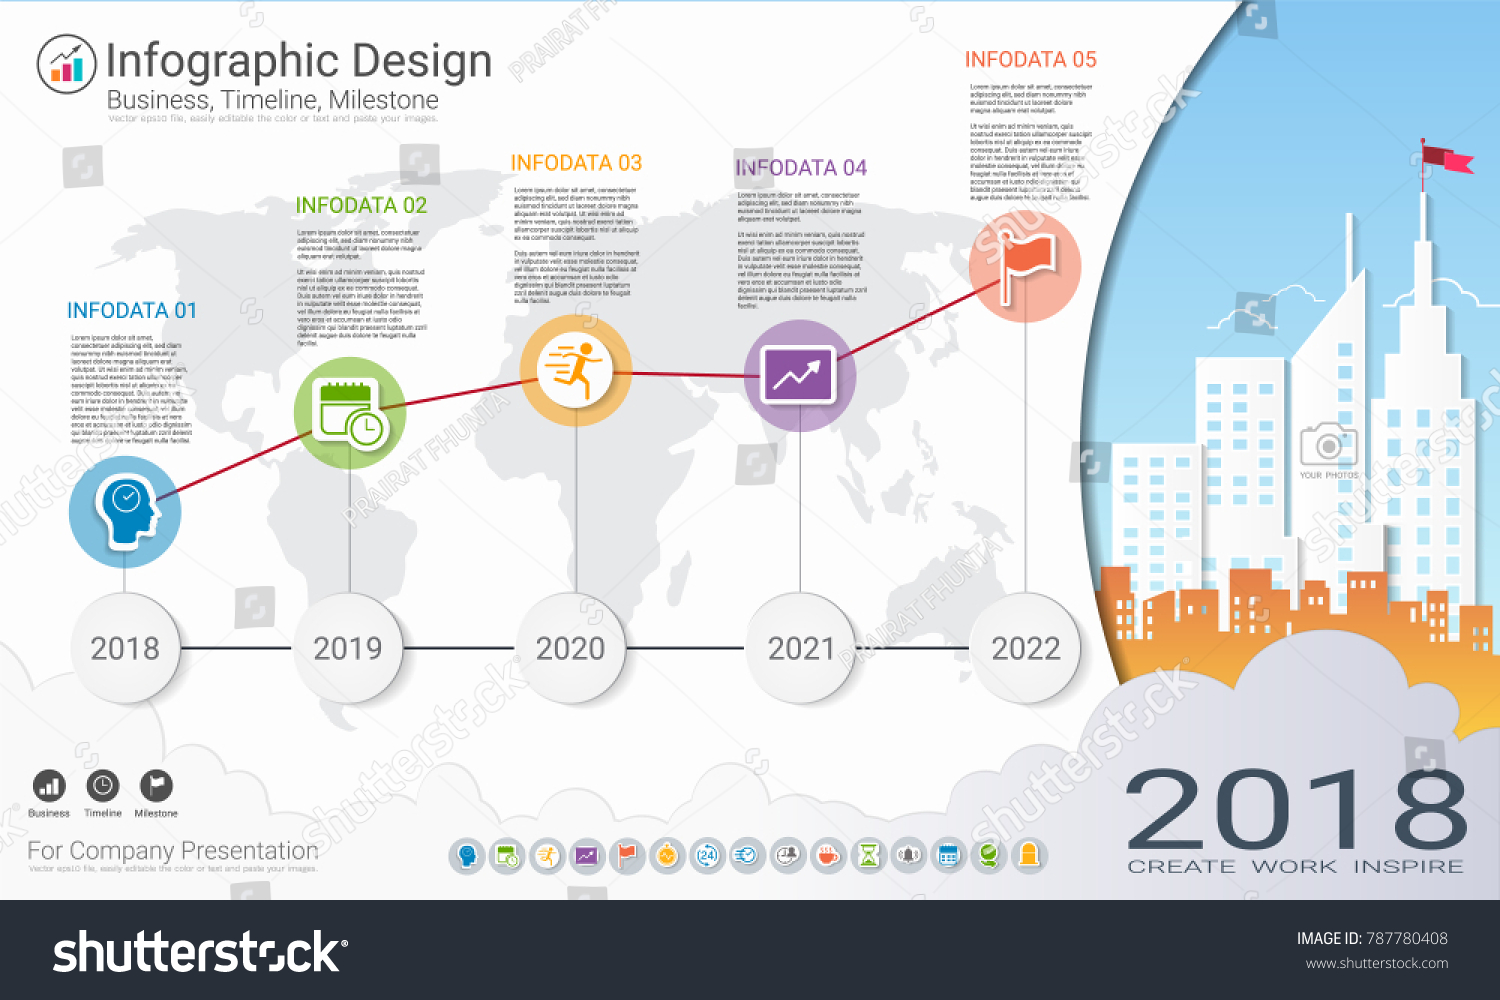 Business Infographics Template Milestone Timeline Road Stock Vector Process Flow Diagram Infographic For Powerpoint Or Map With Flowchart 5 Options Strategic